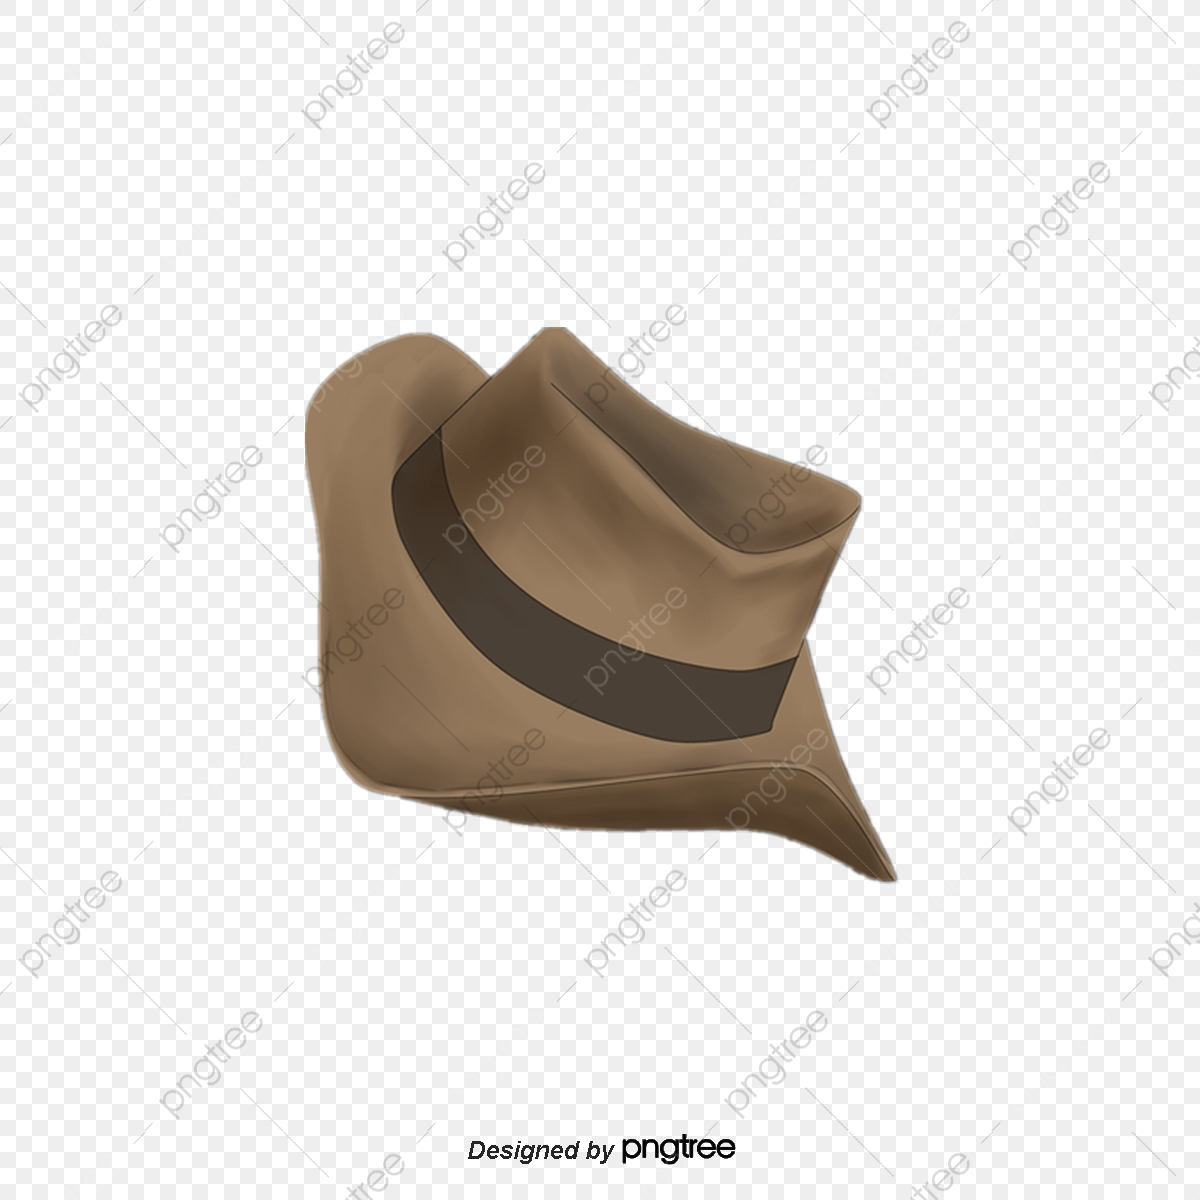 hight resolution of commercial use resource upgrade to premium plan and get license authorization upgradenow creative cartoon cowboy hat cartoon clipart